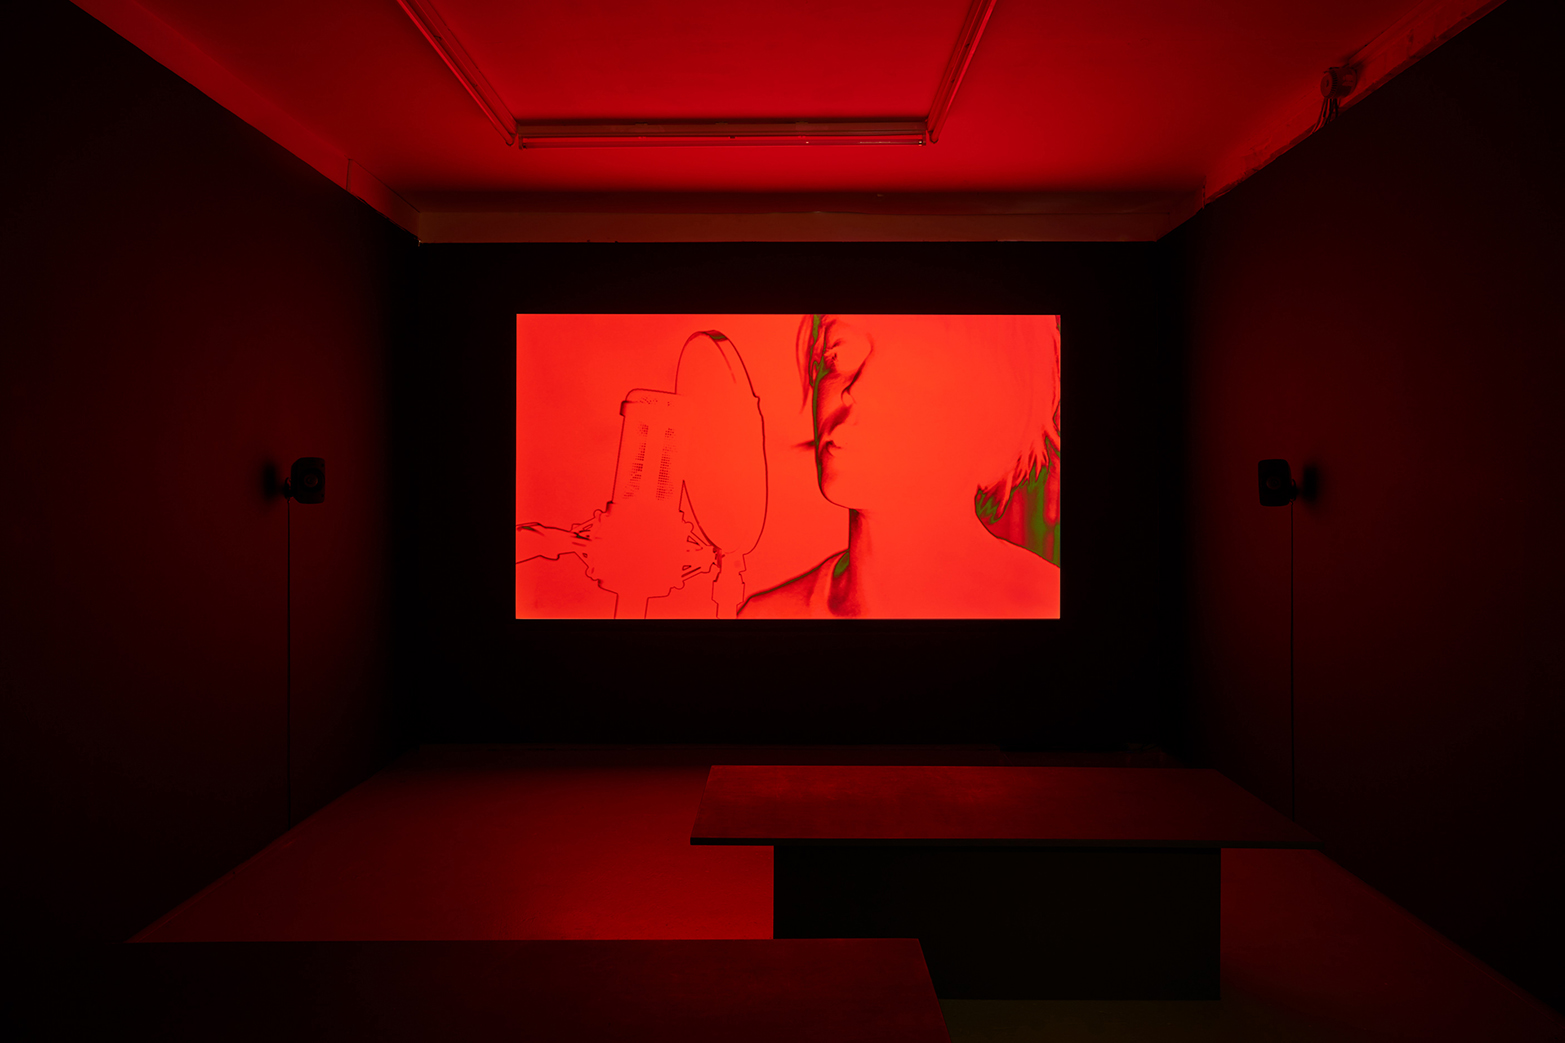 David Ferrando Giraut, The Accursed Stare, 2017. Installation view, Tenderpixel. Digital animation with 5.1 sound. 35 mins.